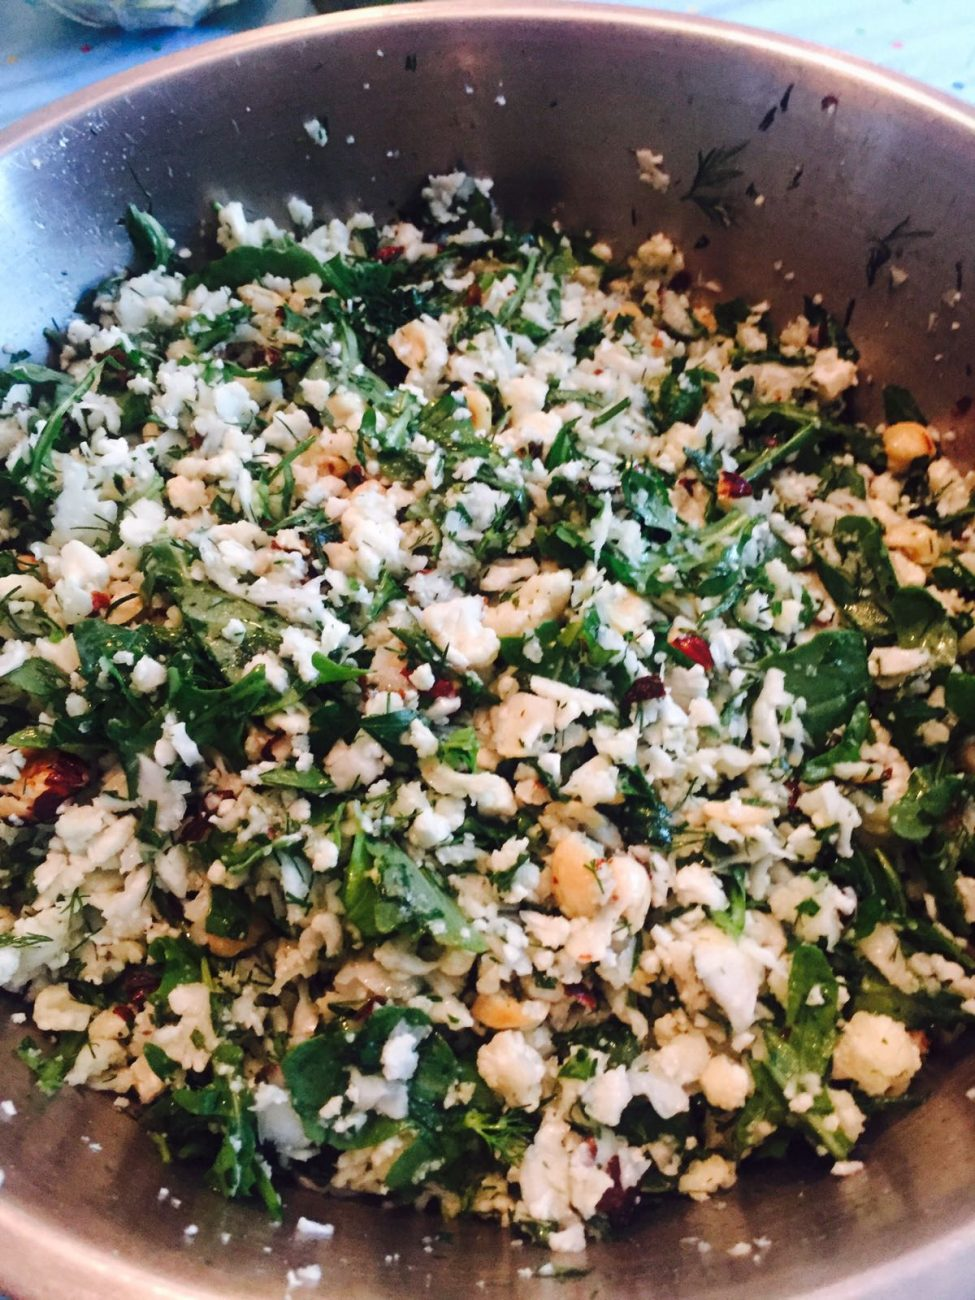 Cauliflower Salad With Herbs and Hazelnut